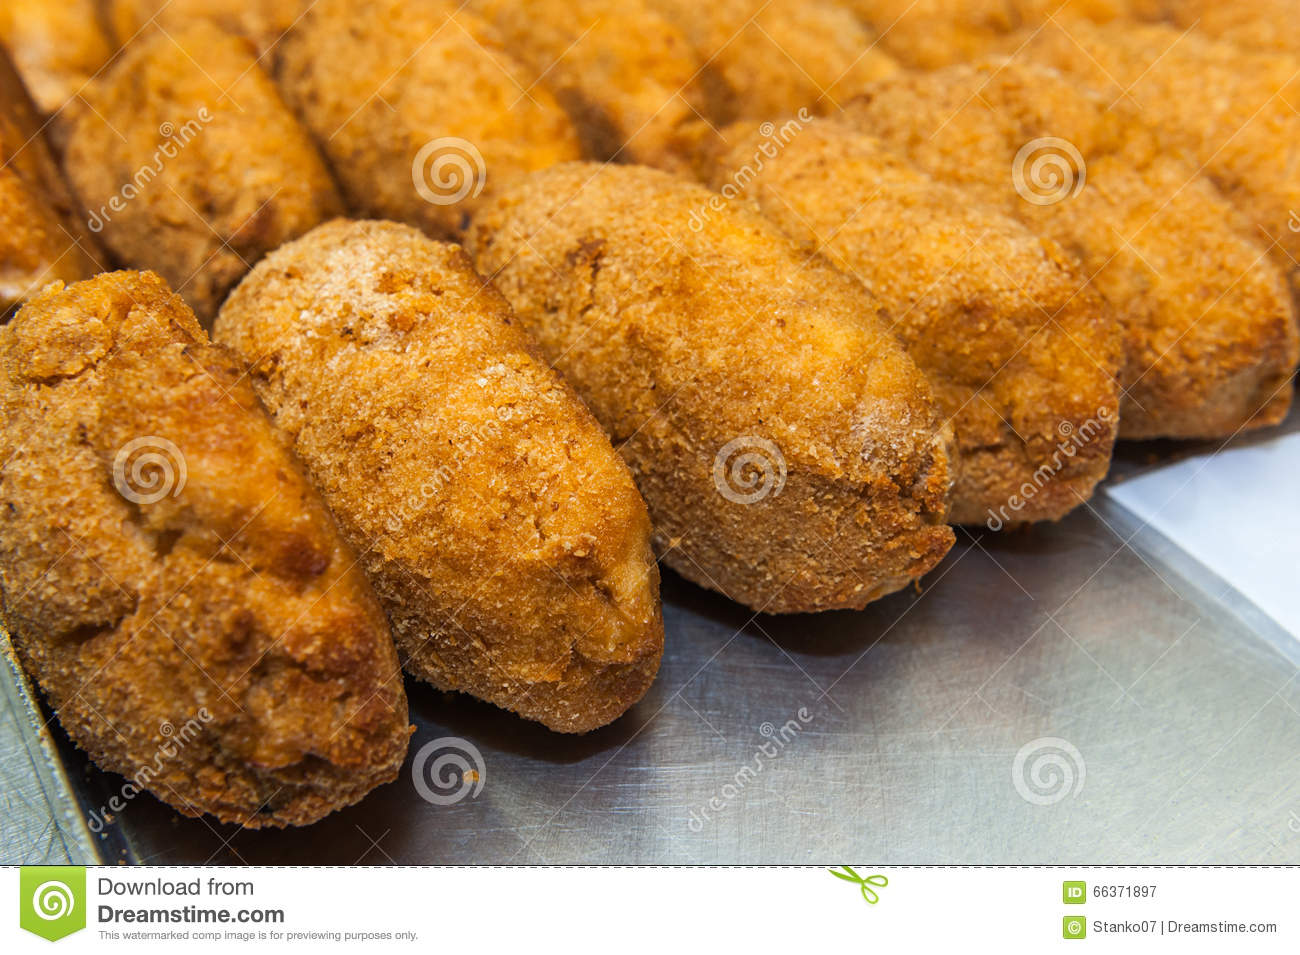 What are cutlets de-volay